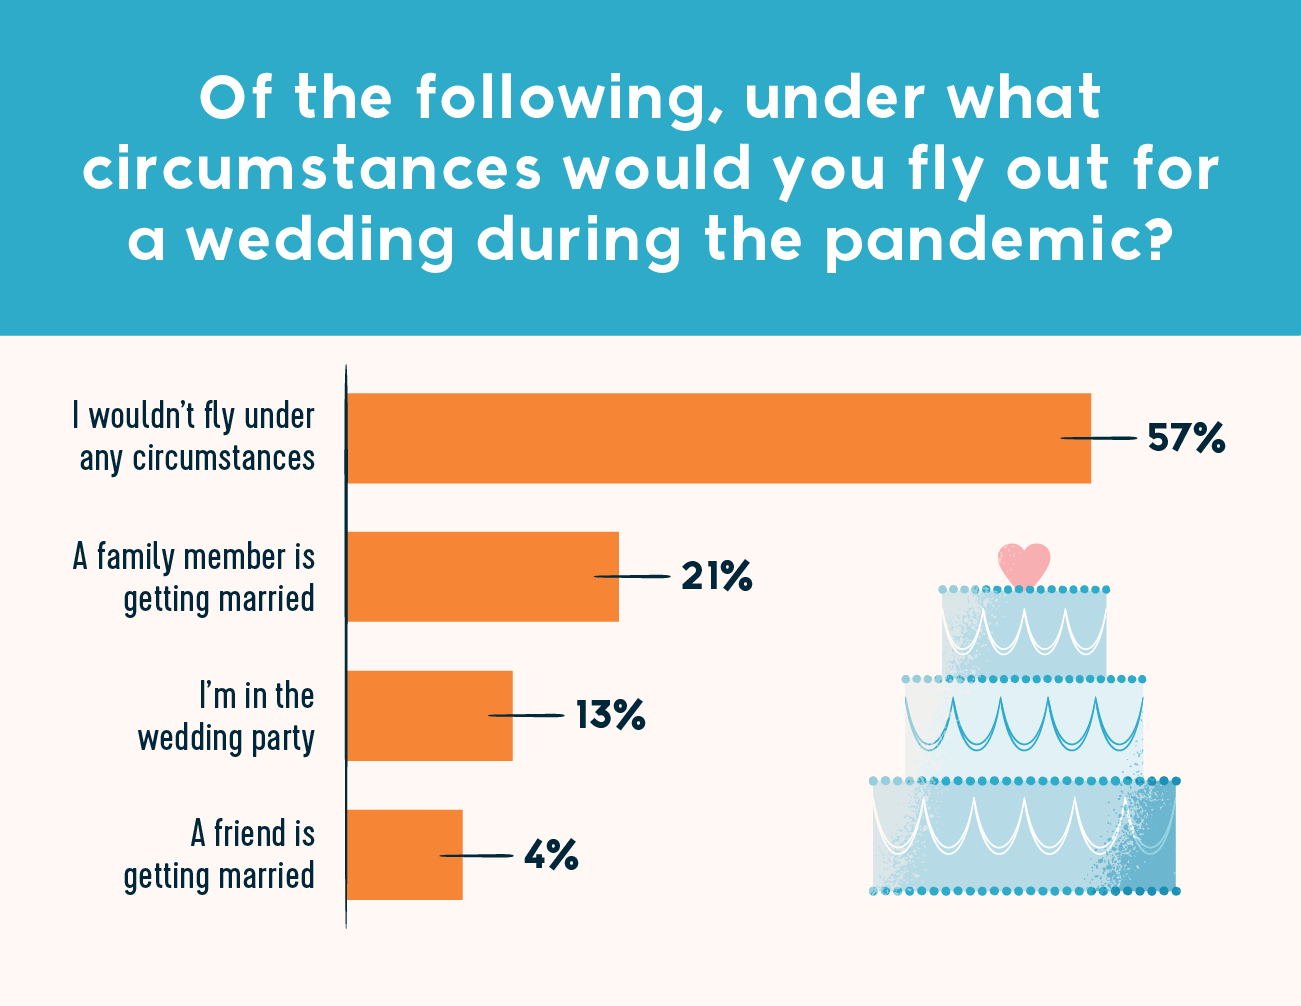 of the following, under what circumstances would you fly out for a wedding during the pandemic